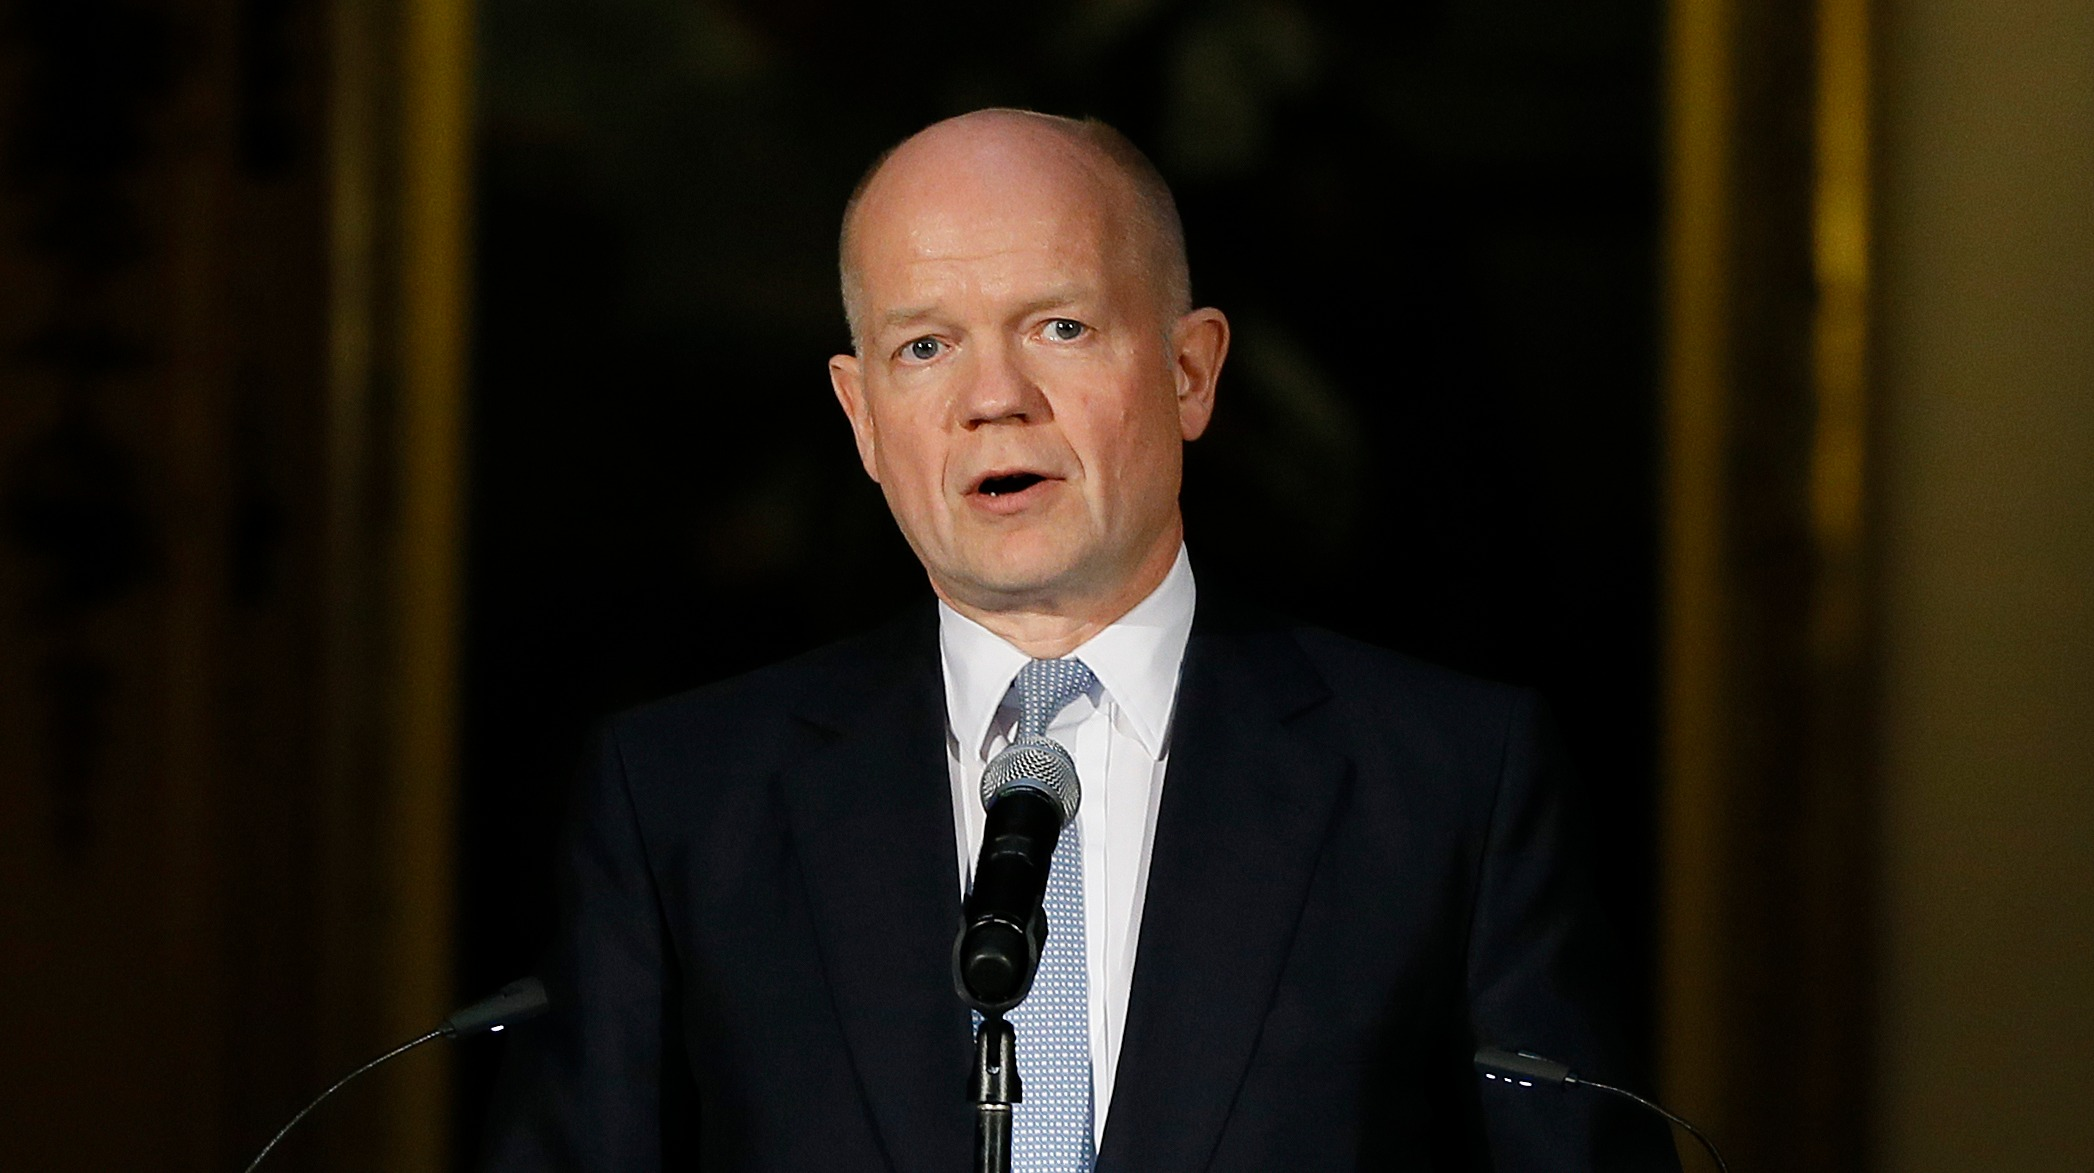 Lord Hague: 'Voters can't expect all MPs to be perfect'